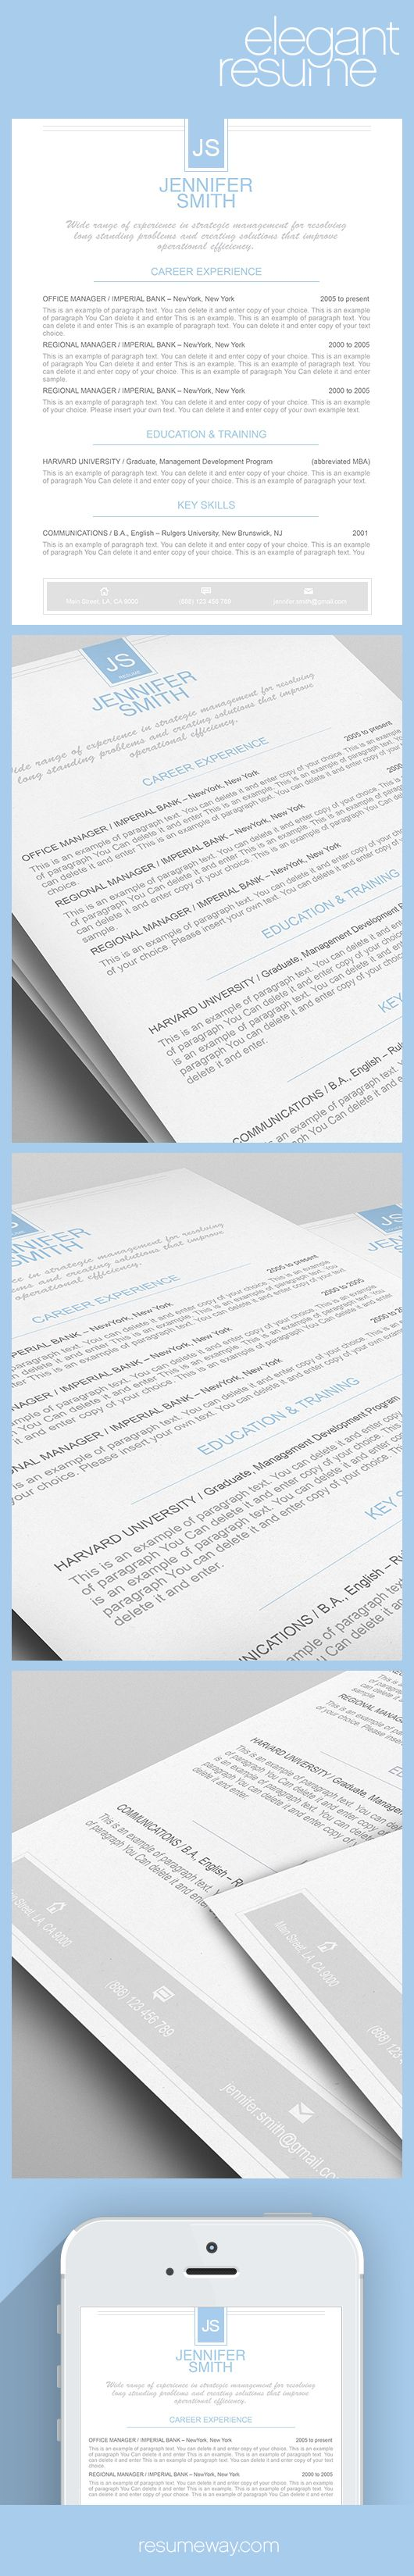 60 best images about resumes    curriculum vitae on pinterest